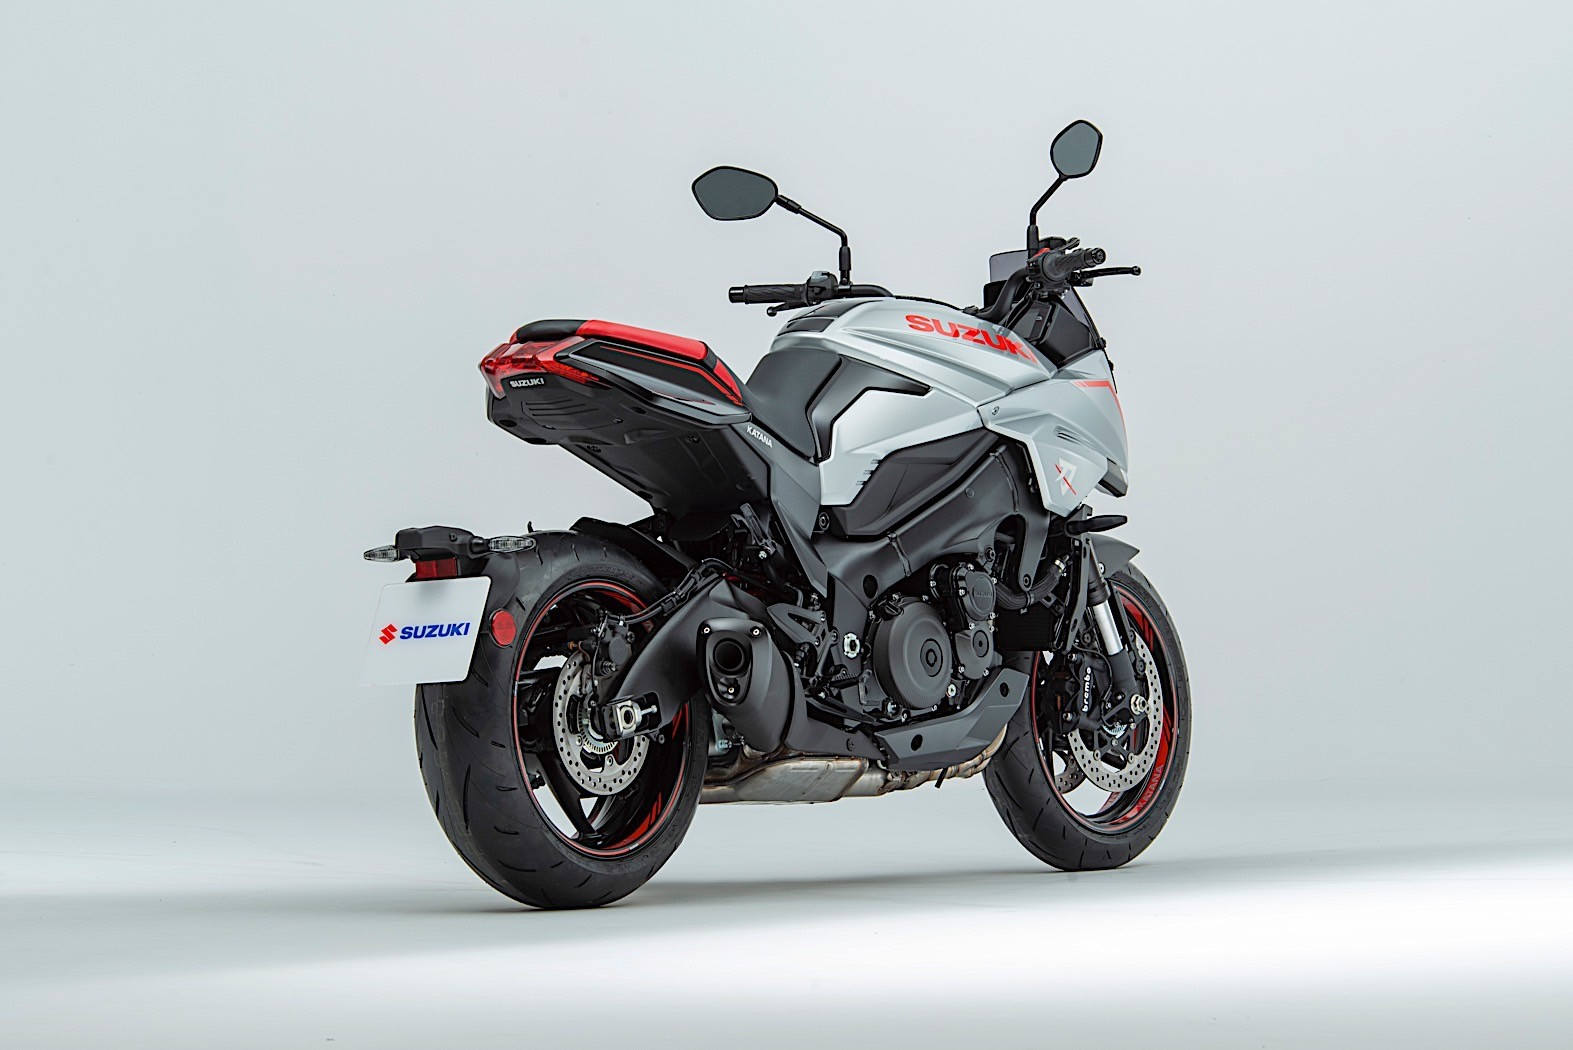 2020-suzuki-katana-available-with-samurai-pack-in-the-uk-priced-from-gbp-11399-5